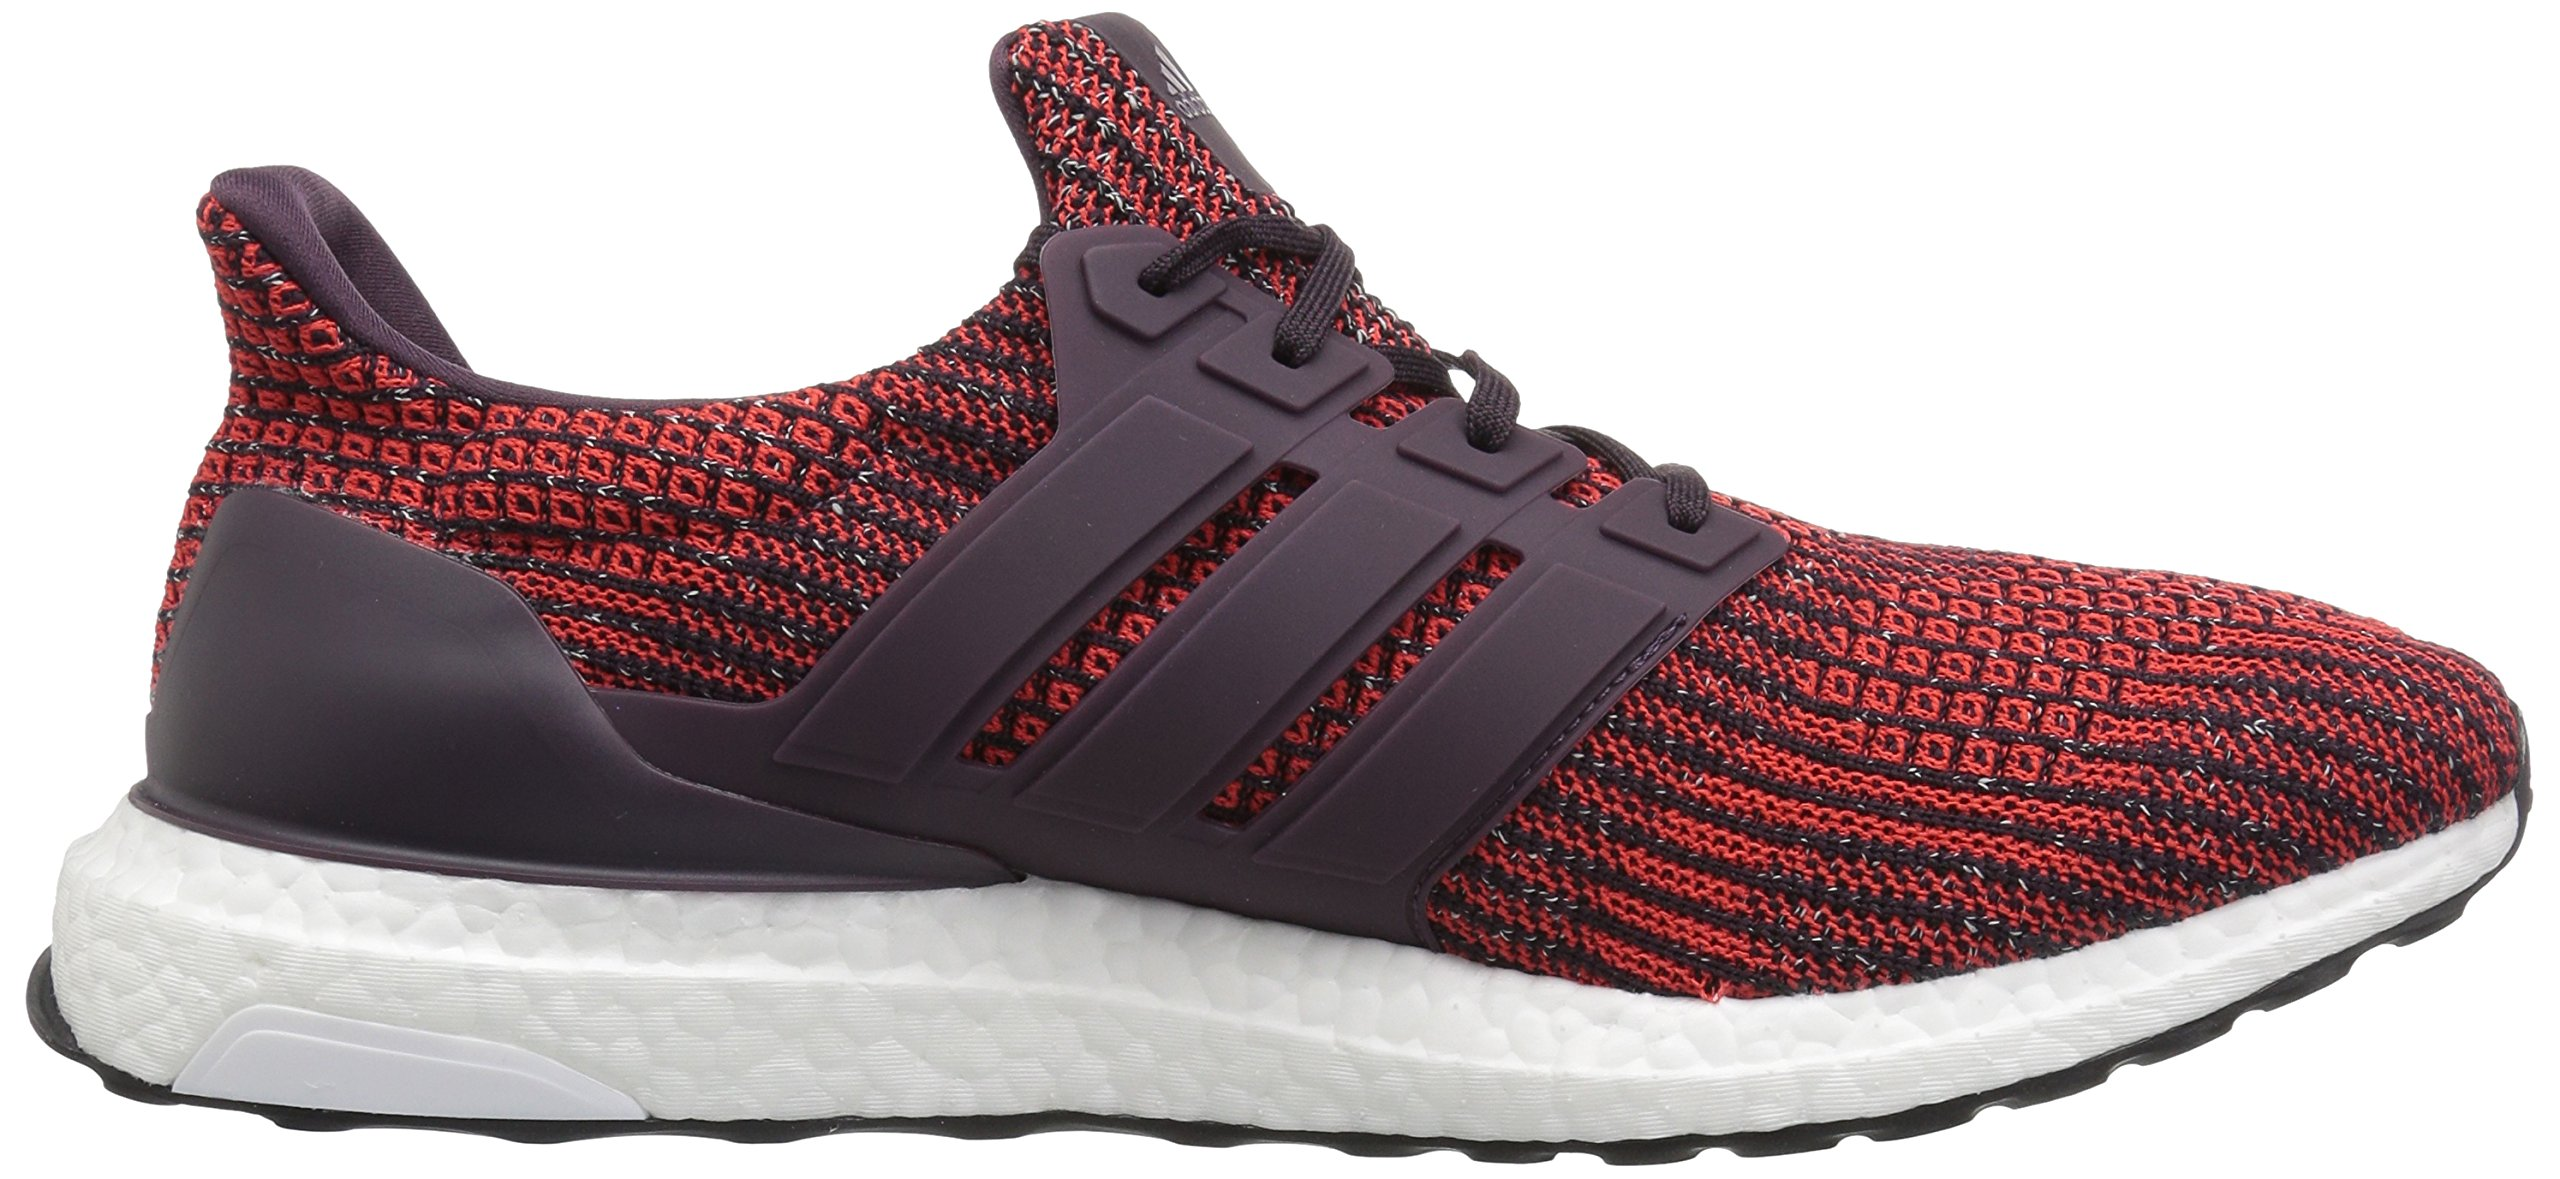 adidas Men's Ultraboost Road Running Shoe, Noble Red/Noble Red/Core Black, 5 M US by adidas (Image #7)